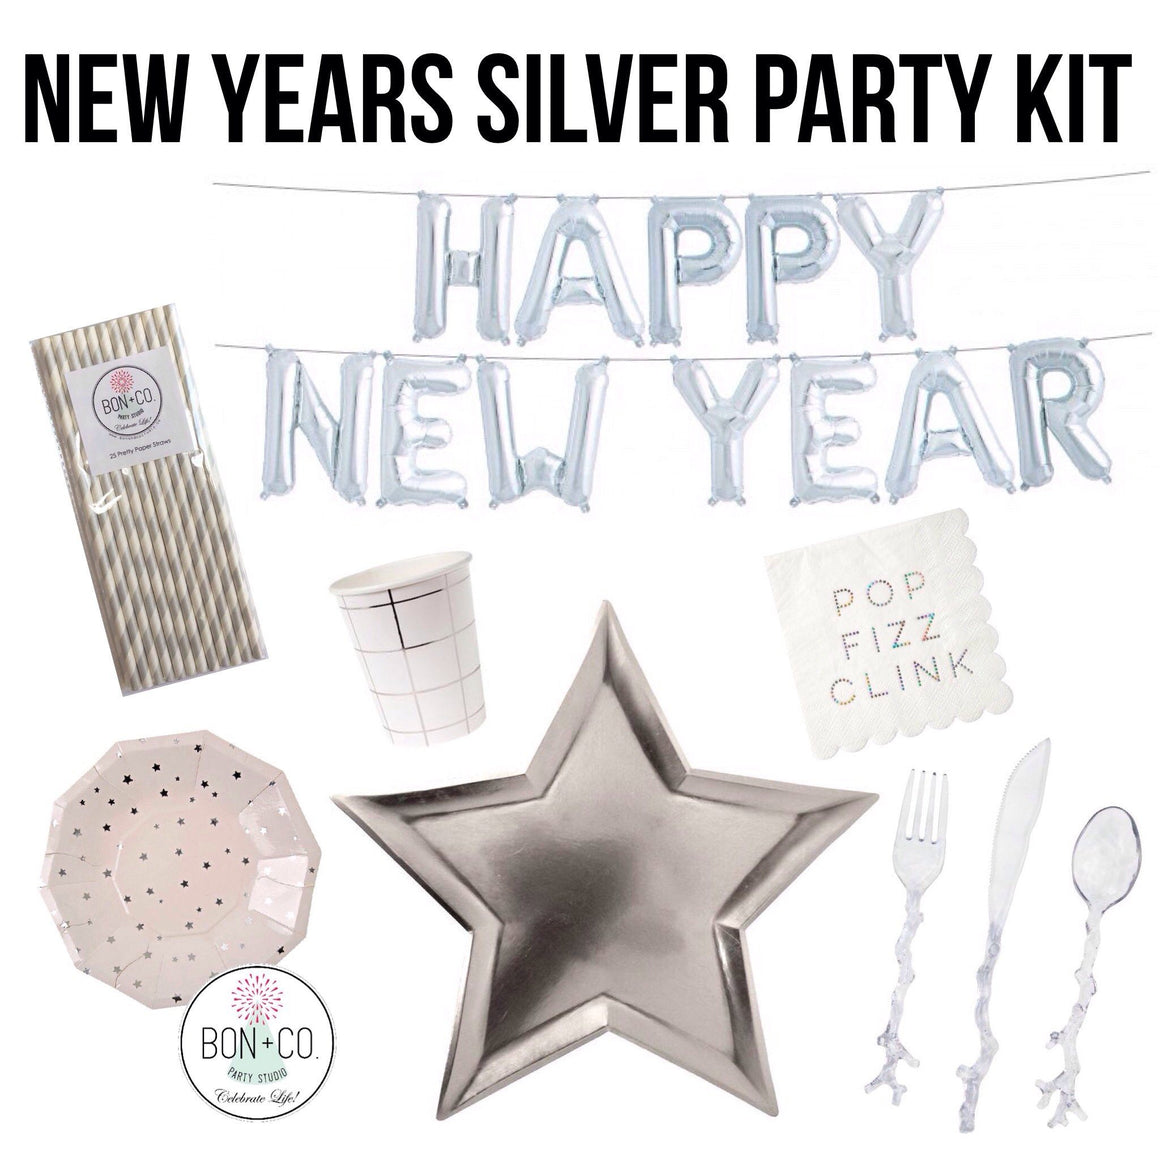 PARTY KIT - NEW YEARS SILVER, Party Kit, Bon + Co. Party Studio - Bon + Co. Party Studio